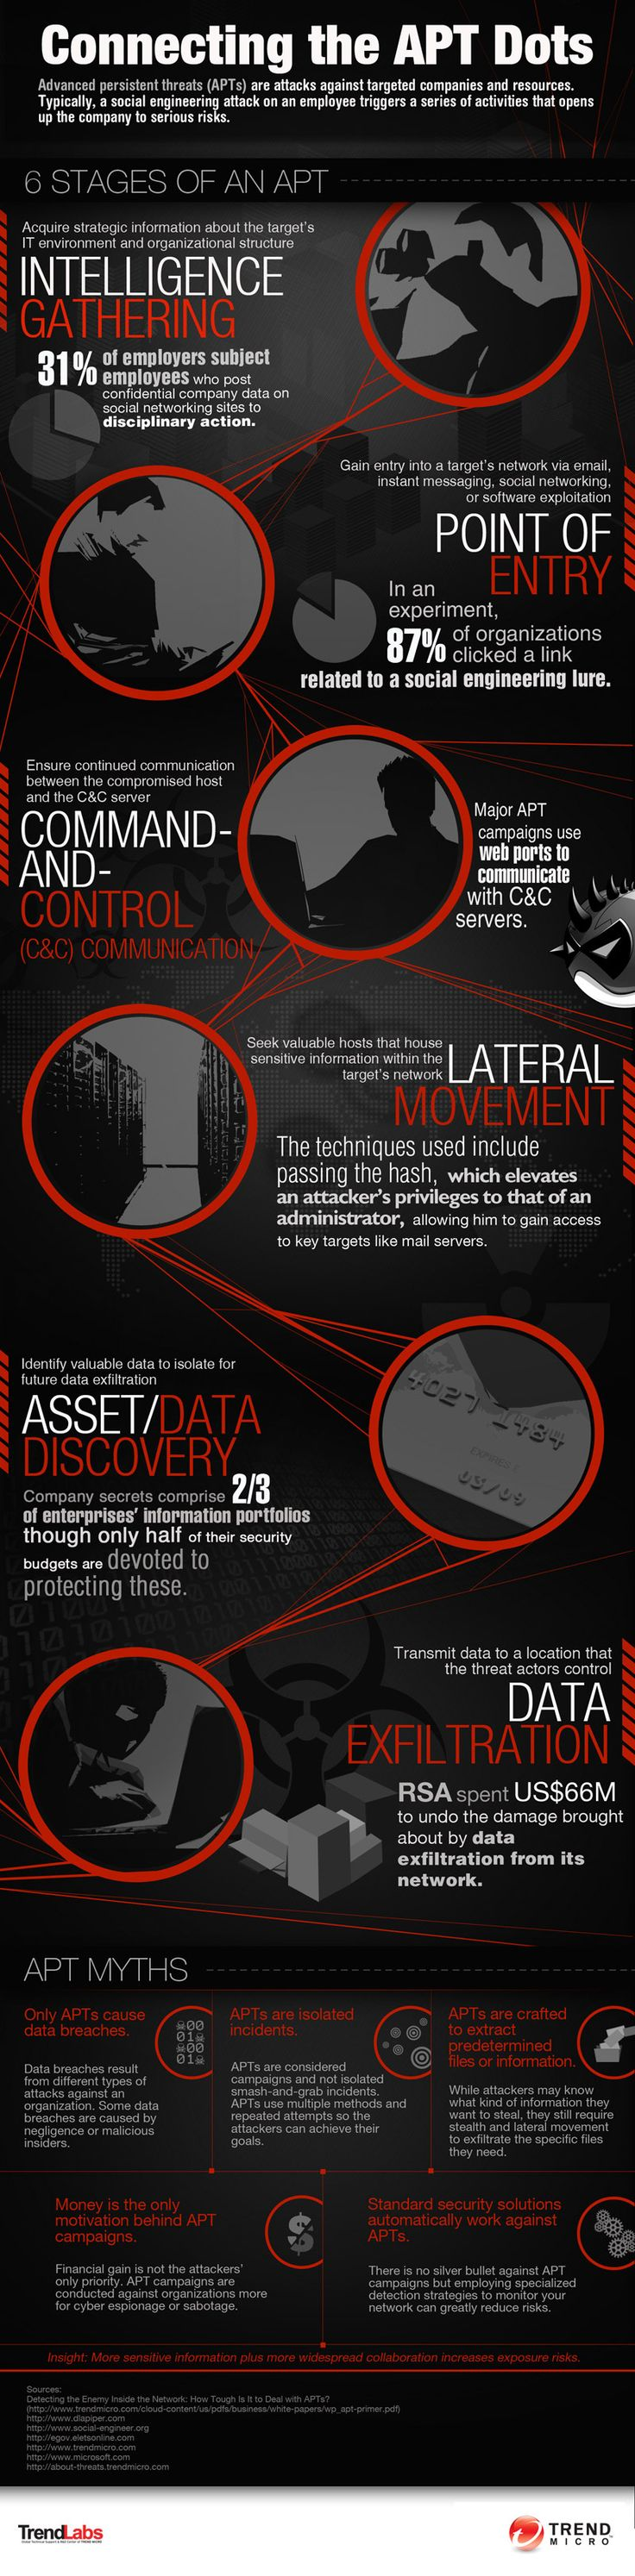 APT: Myths and Challenges | standard security solutions work against advanced persistent threats (APTs)? Are APTs crafted to extract specific files from an organization? Are data breaches caused by APTs? IT groups today face the challenge of protecting/shielding their networks against APTs—computer intrusions by threat actors that aggressively pursue and compromise targets. To help organizations formulate strategies against APTs…